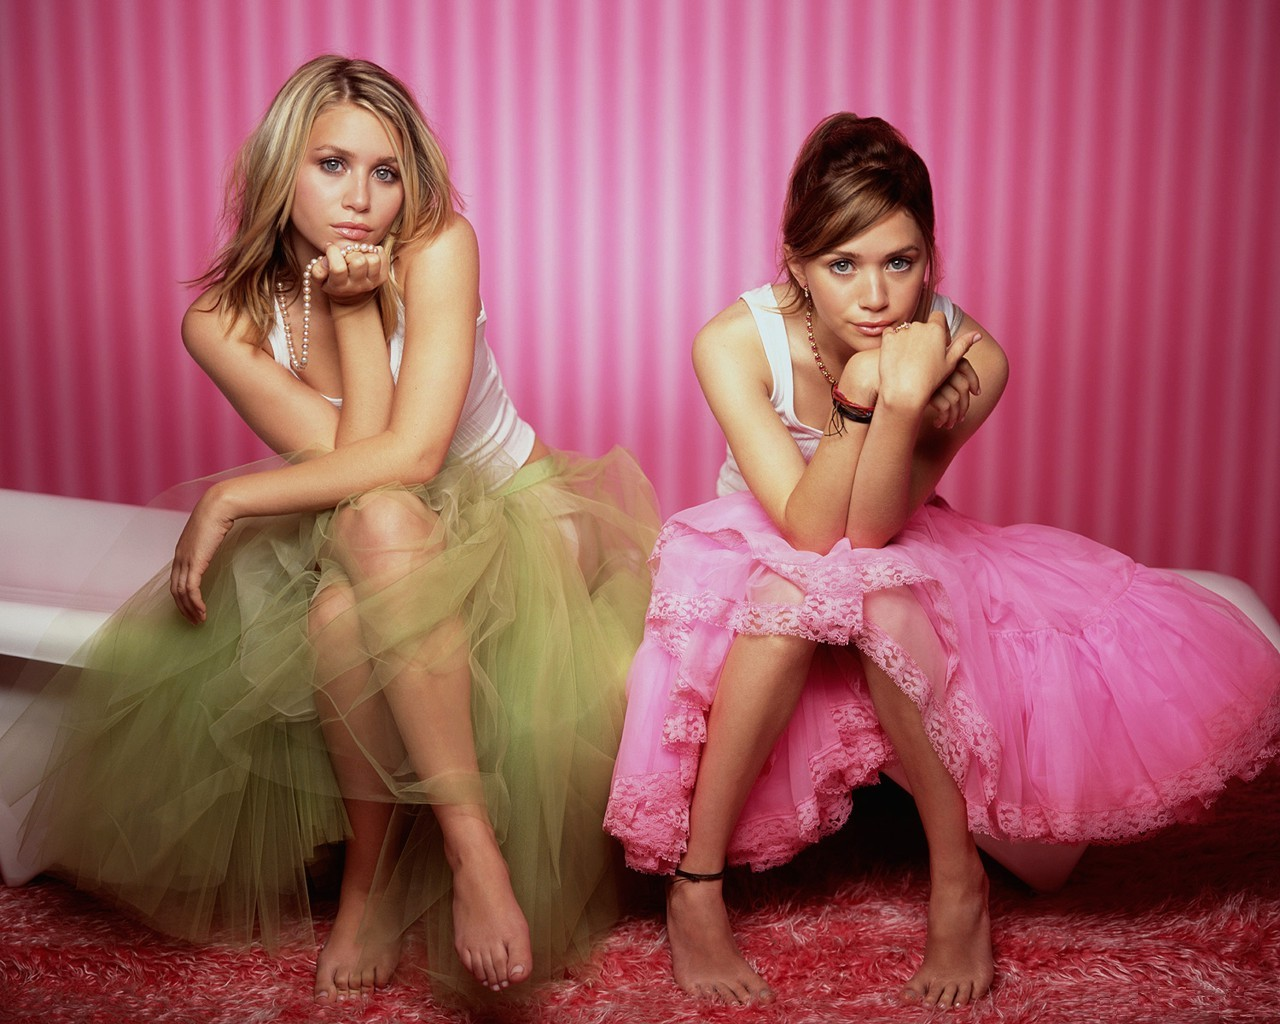 http://3.bp.blogspot.com/-EsqoY_pIqRo/UBm3TZHqZ1I/AAAAAAAADFw/PKsHCsMbpuw/s1600/08%20mary-kate-and-ashley_olsen.jpg